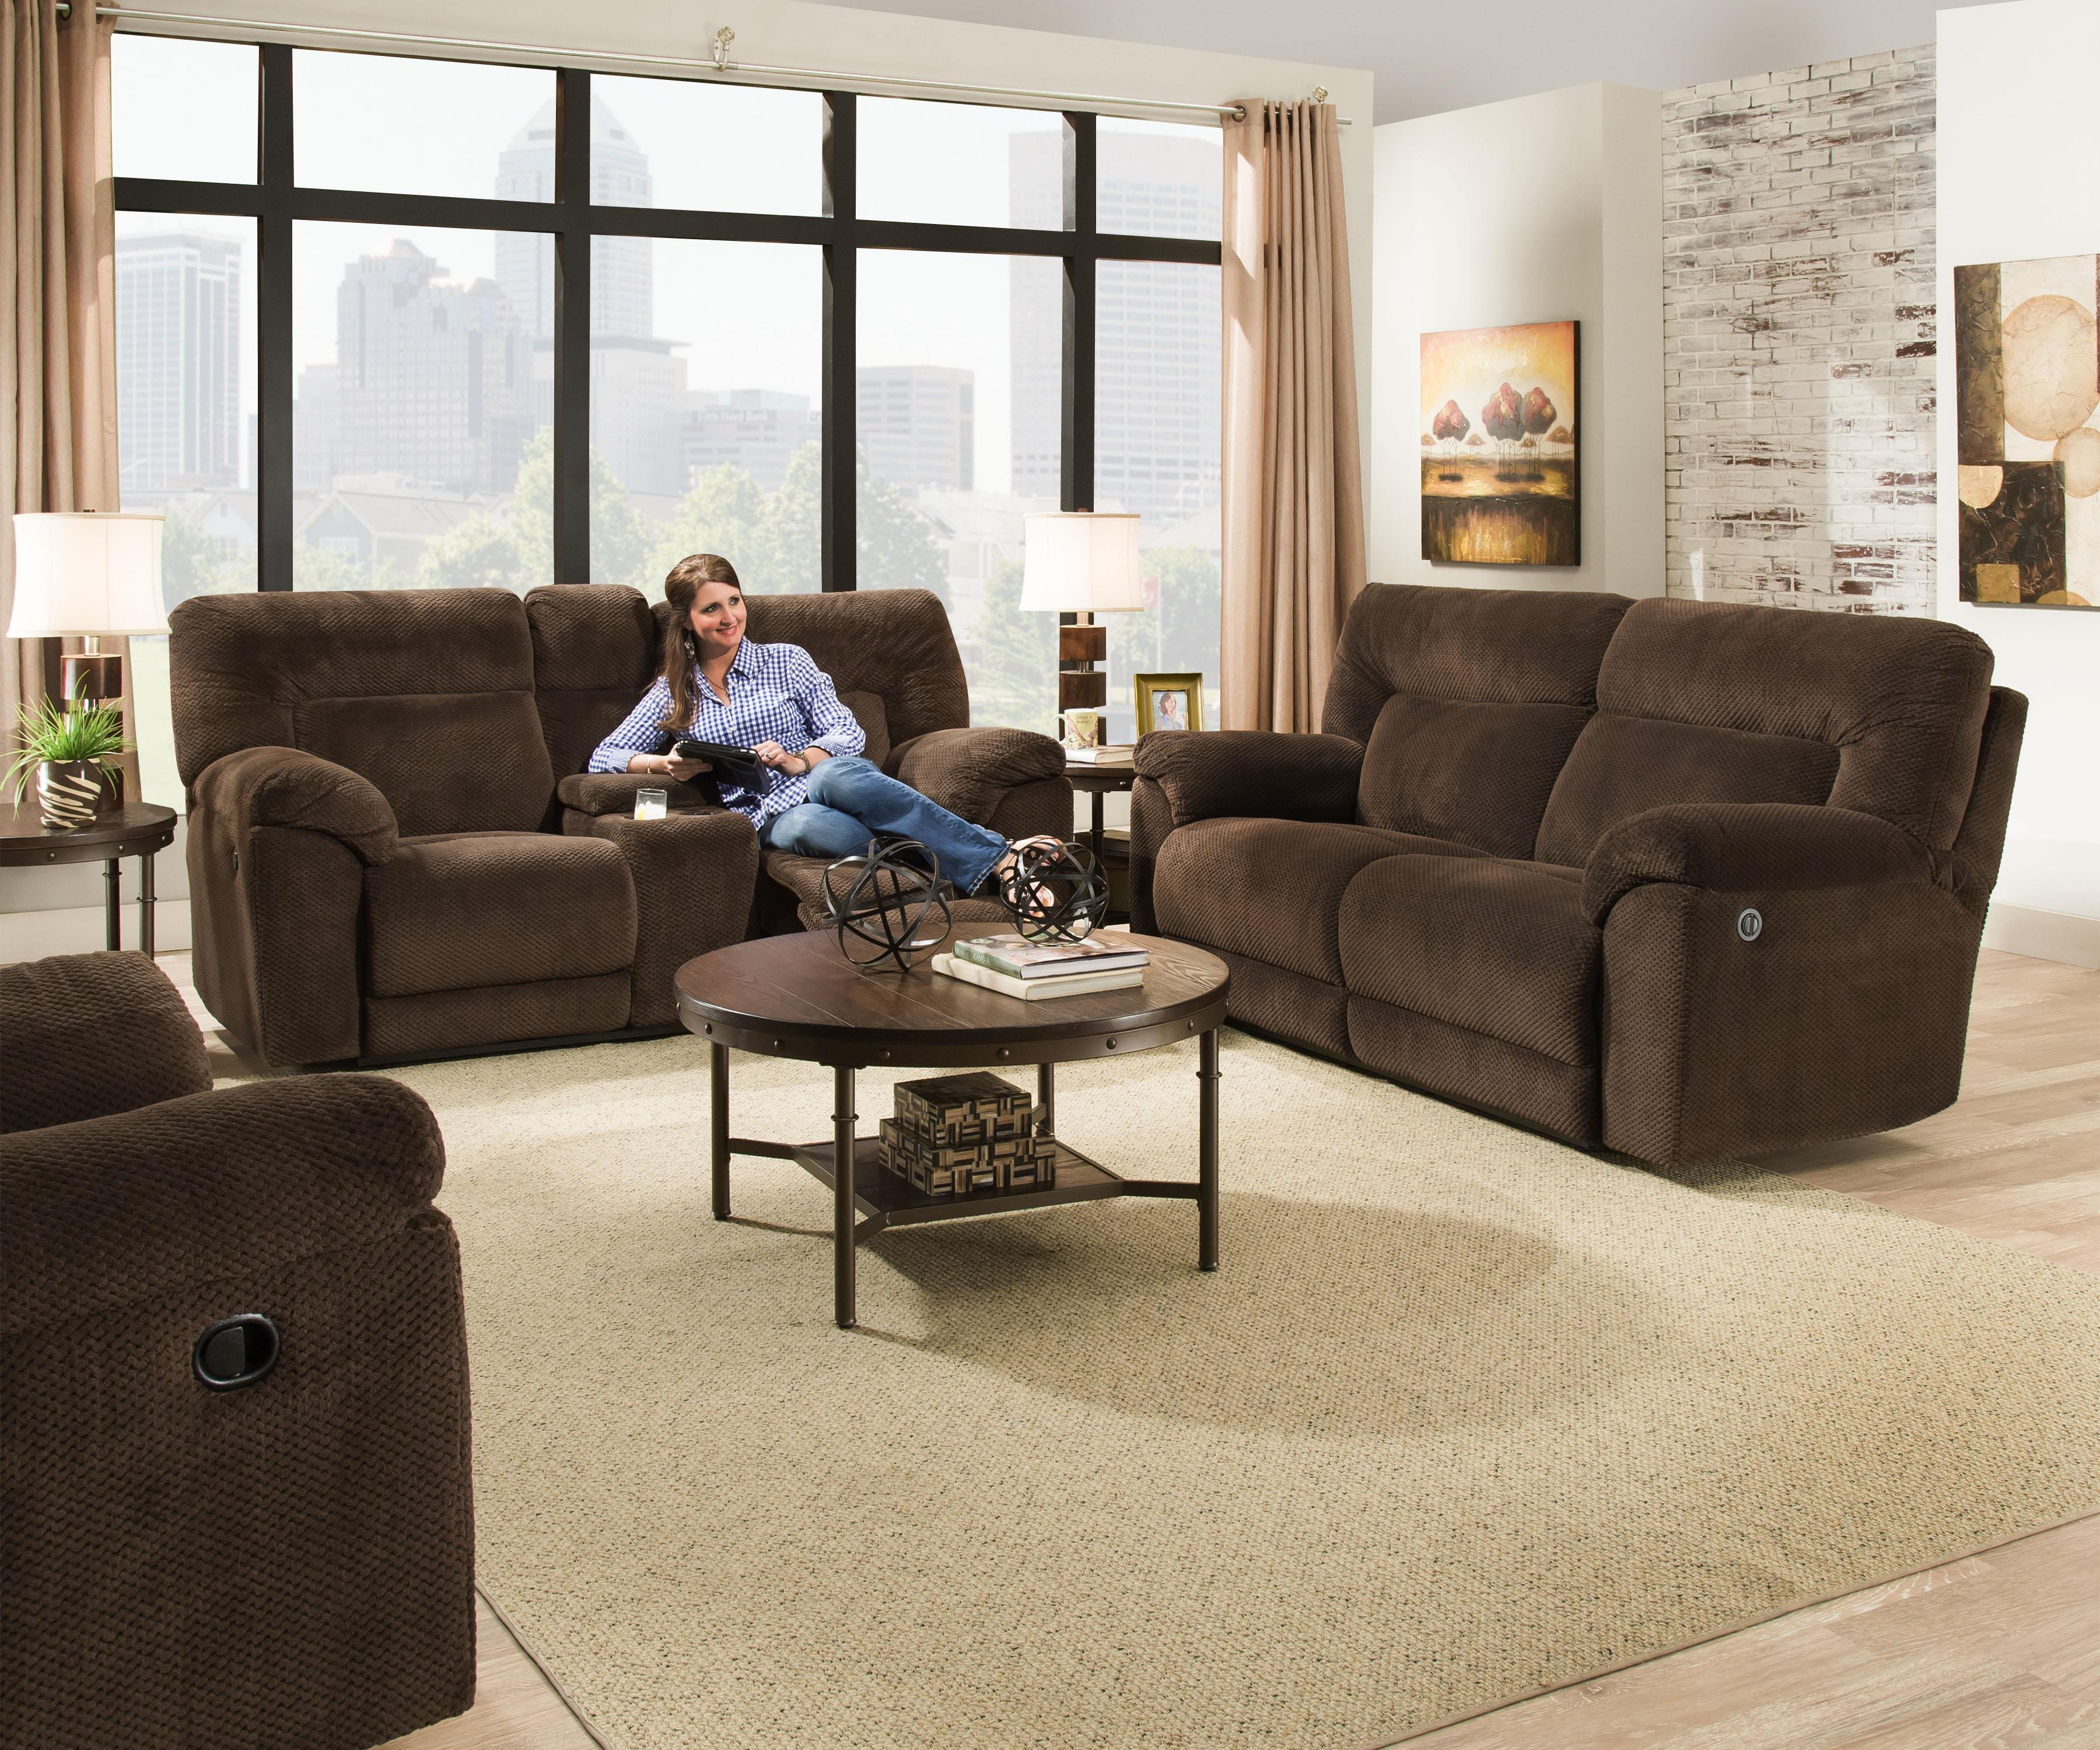 50570 Reclining Living Room Group by United Furniture Industries at Dream Home Interiors